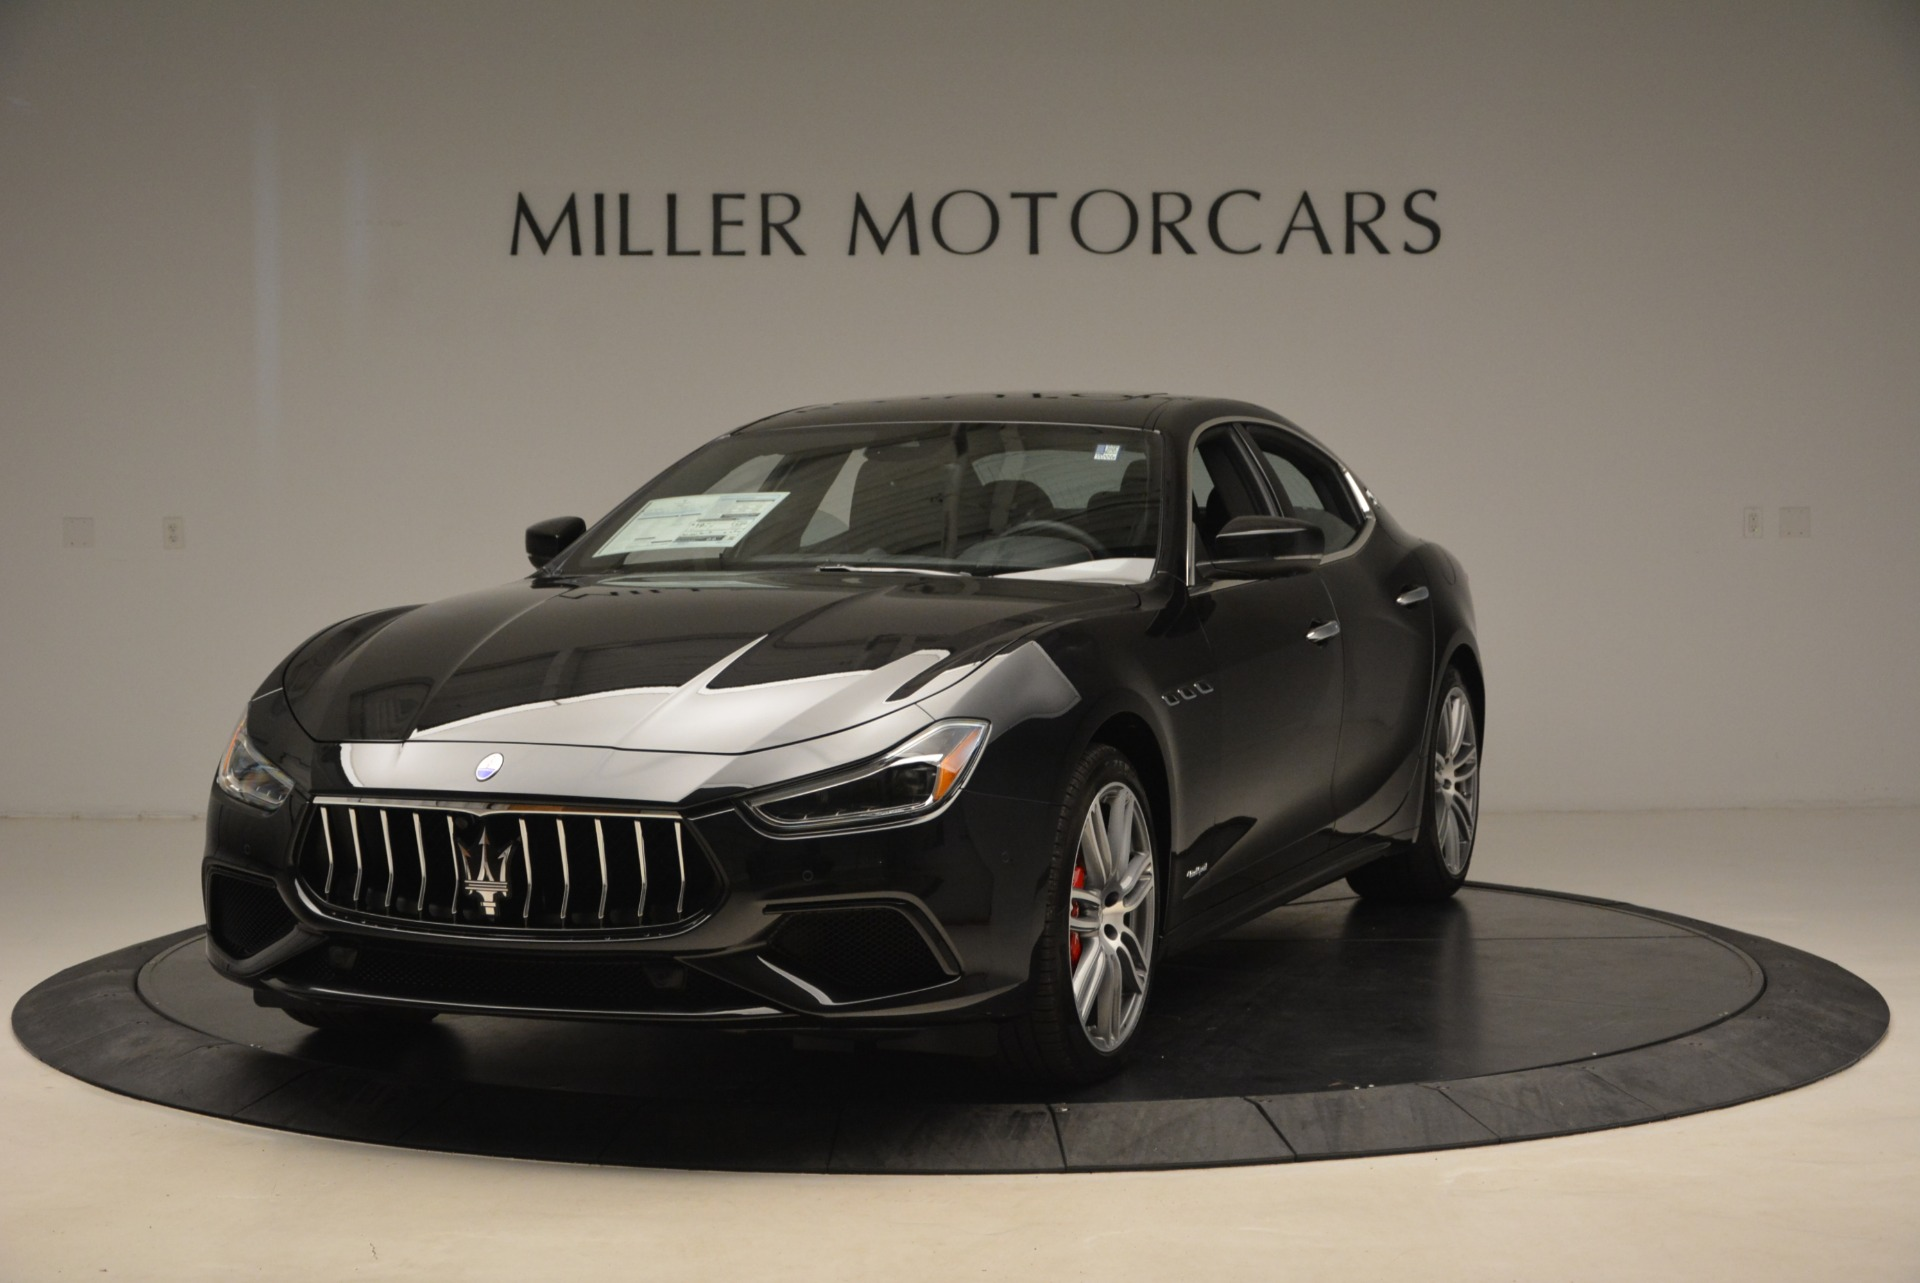 Used 2019 Maserati Ghibli S Q4 GranSport for sale $64,900 at Pagani of Greenwich in Greenwich CT 06830 1